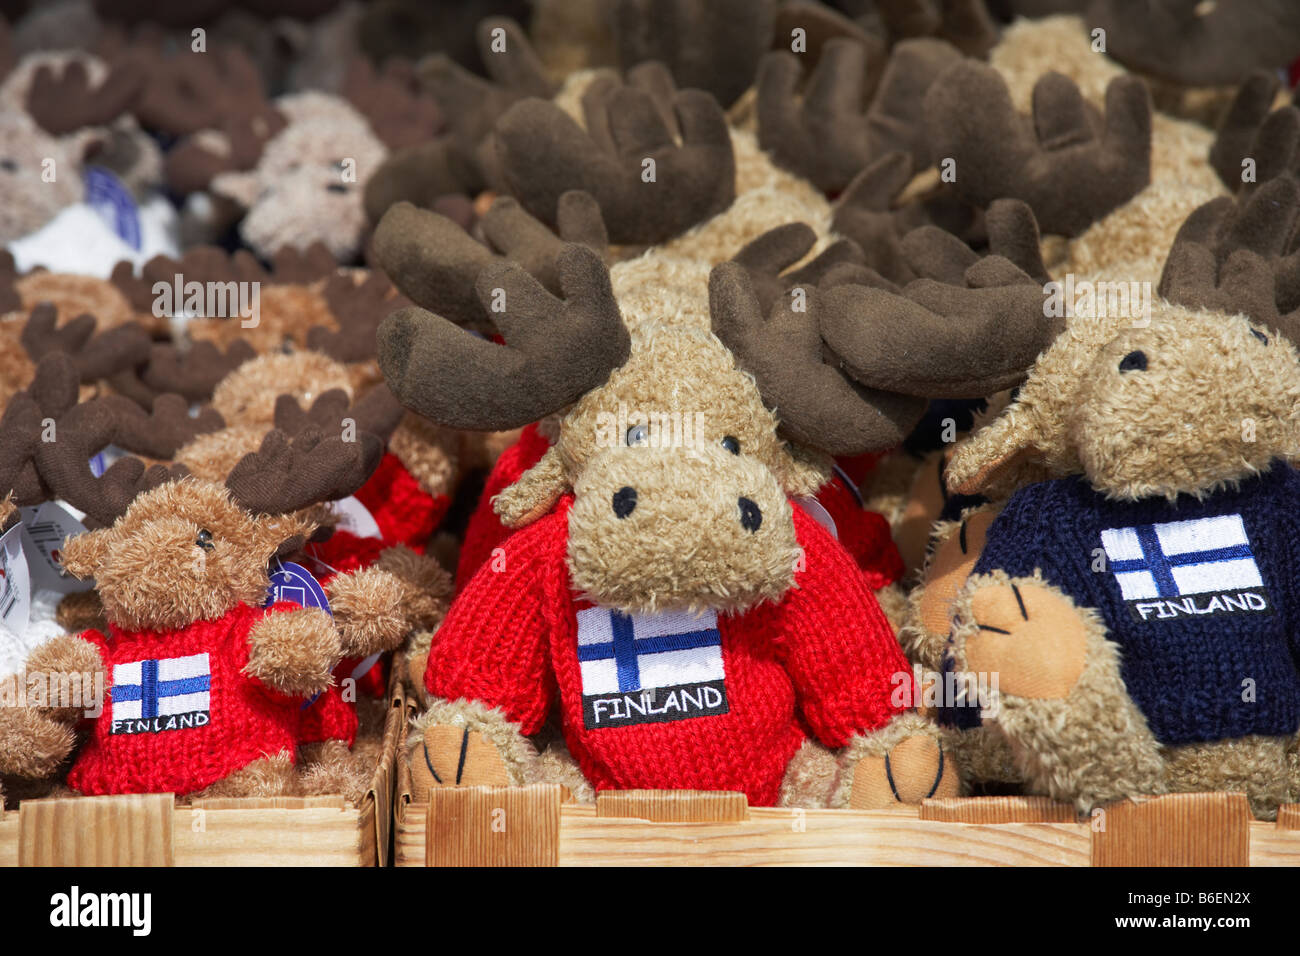 Fluffy Moose tourist gifts wearing Finnish flag sweaters on sale in the Market Square Helsinki Finland Stock Photo